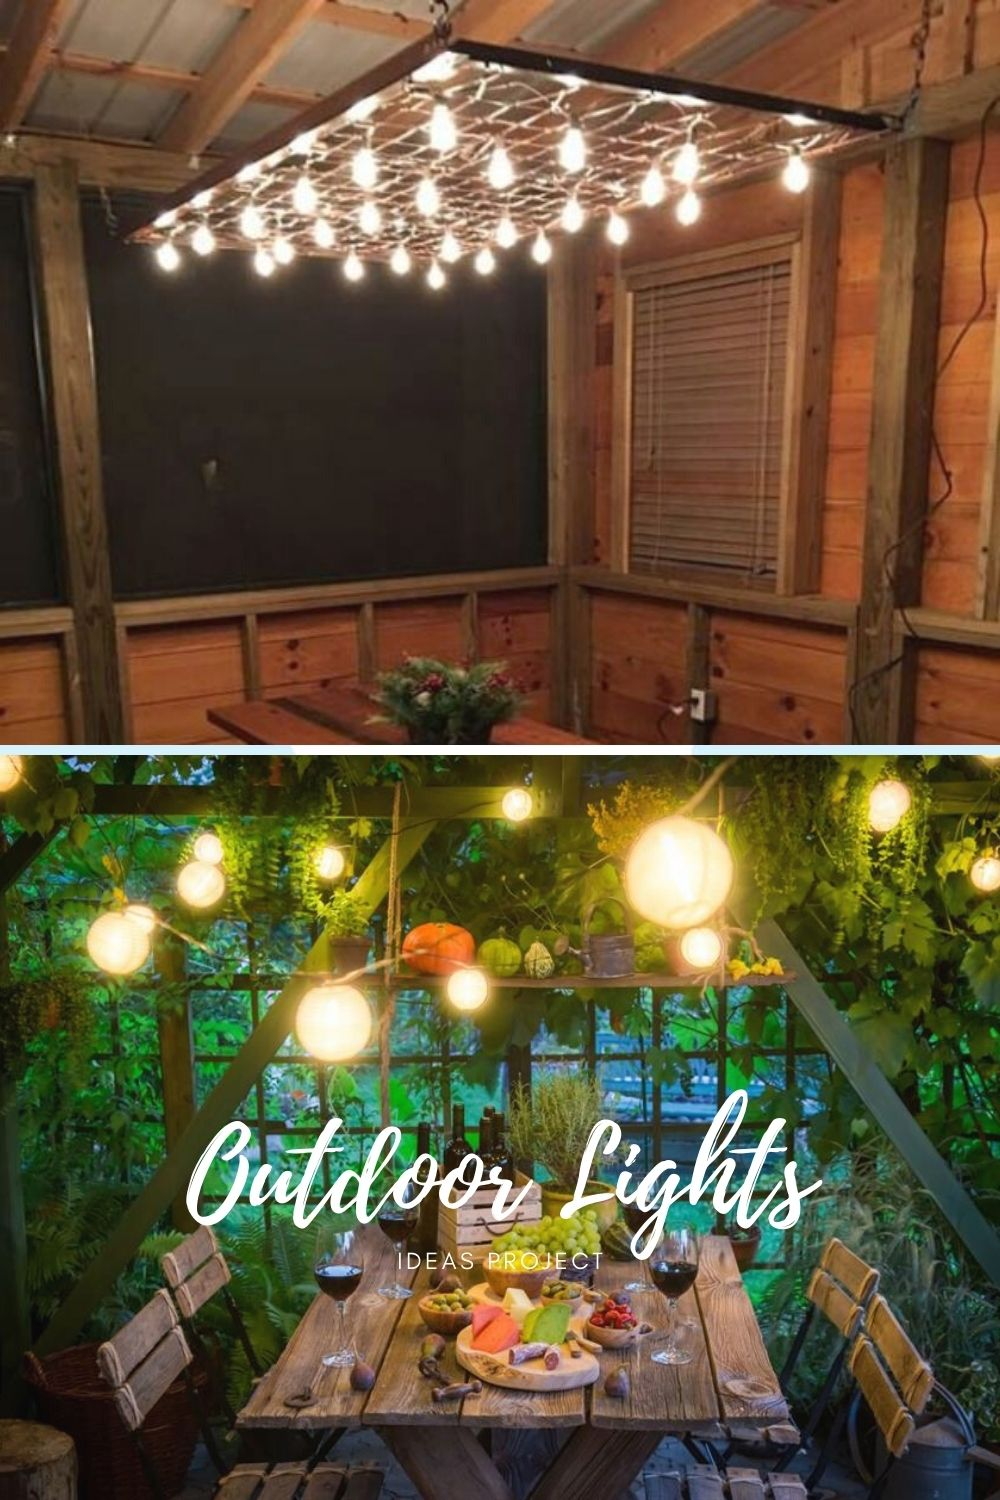 Best Ideas For Diy Outdoor Lights In 2020 Diy Outdoor Lighting Outdoor Lighting Ideas Backyards Outdoor Diy Projects